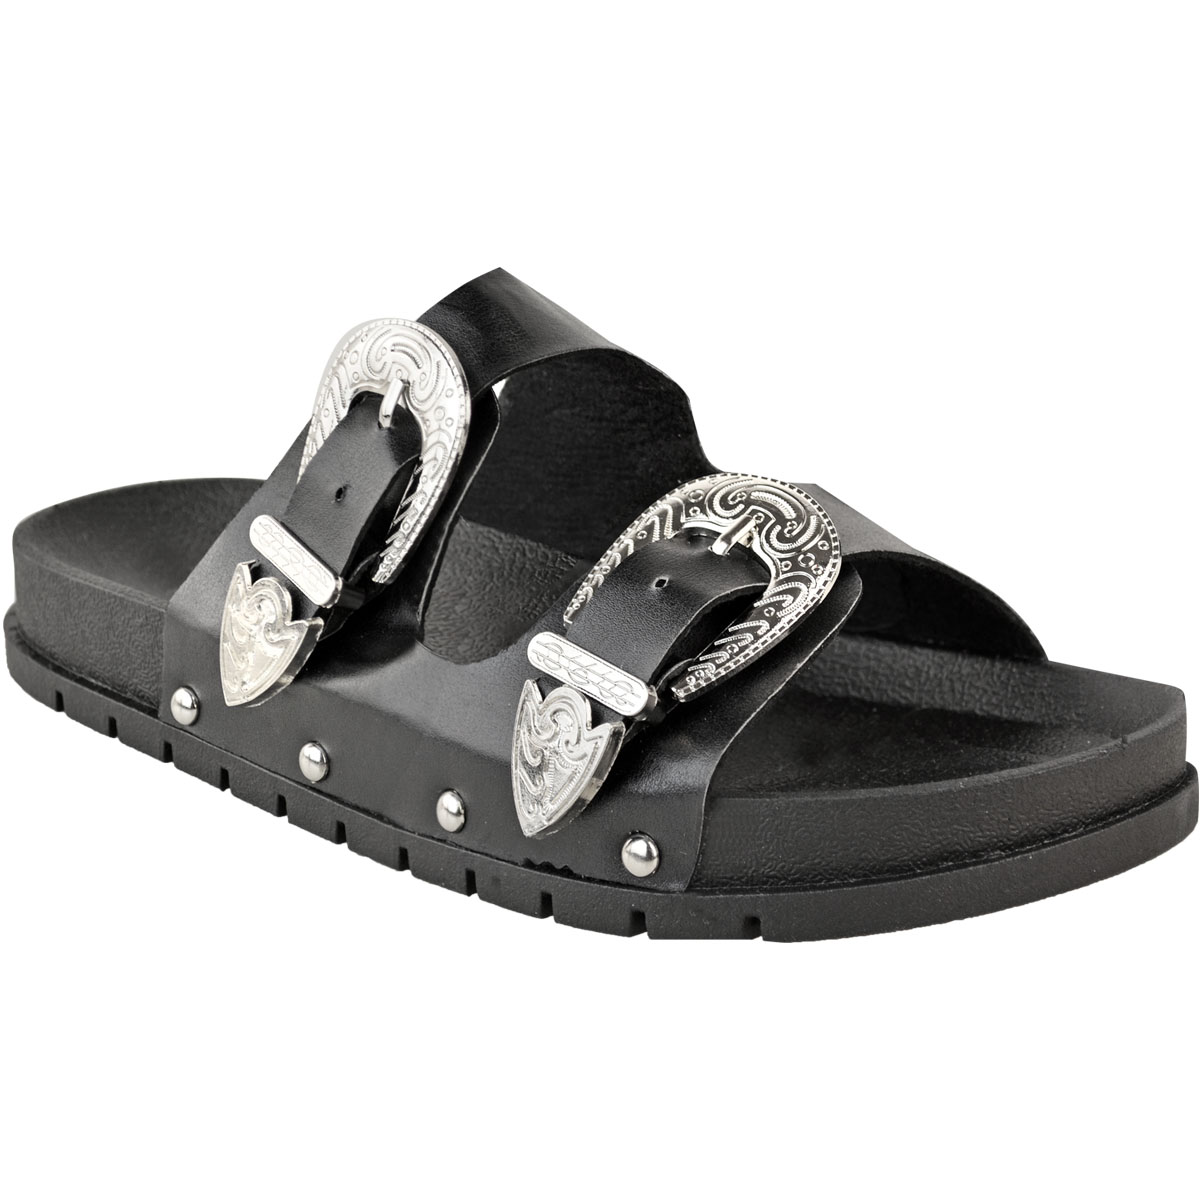 734baa4838af Womens Ladies Flat Slip On Sandals Sliders Studded Wide Strap Summer ...